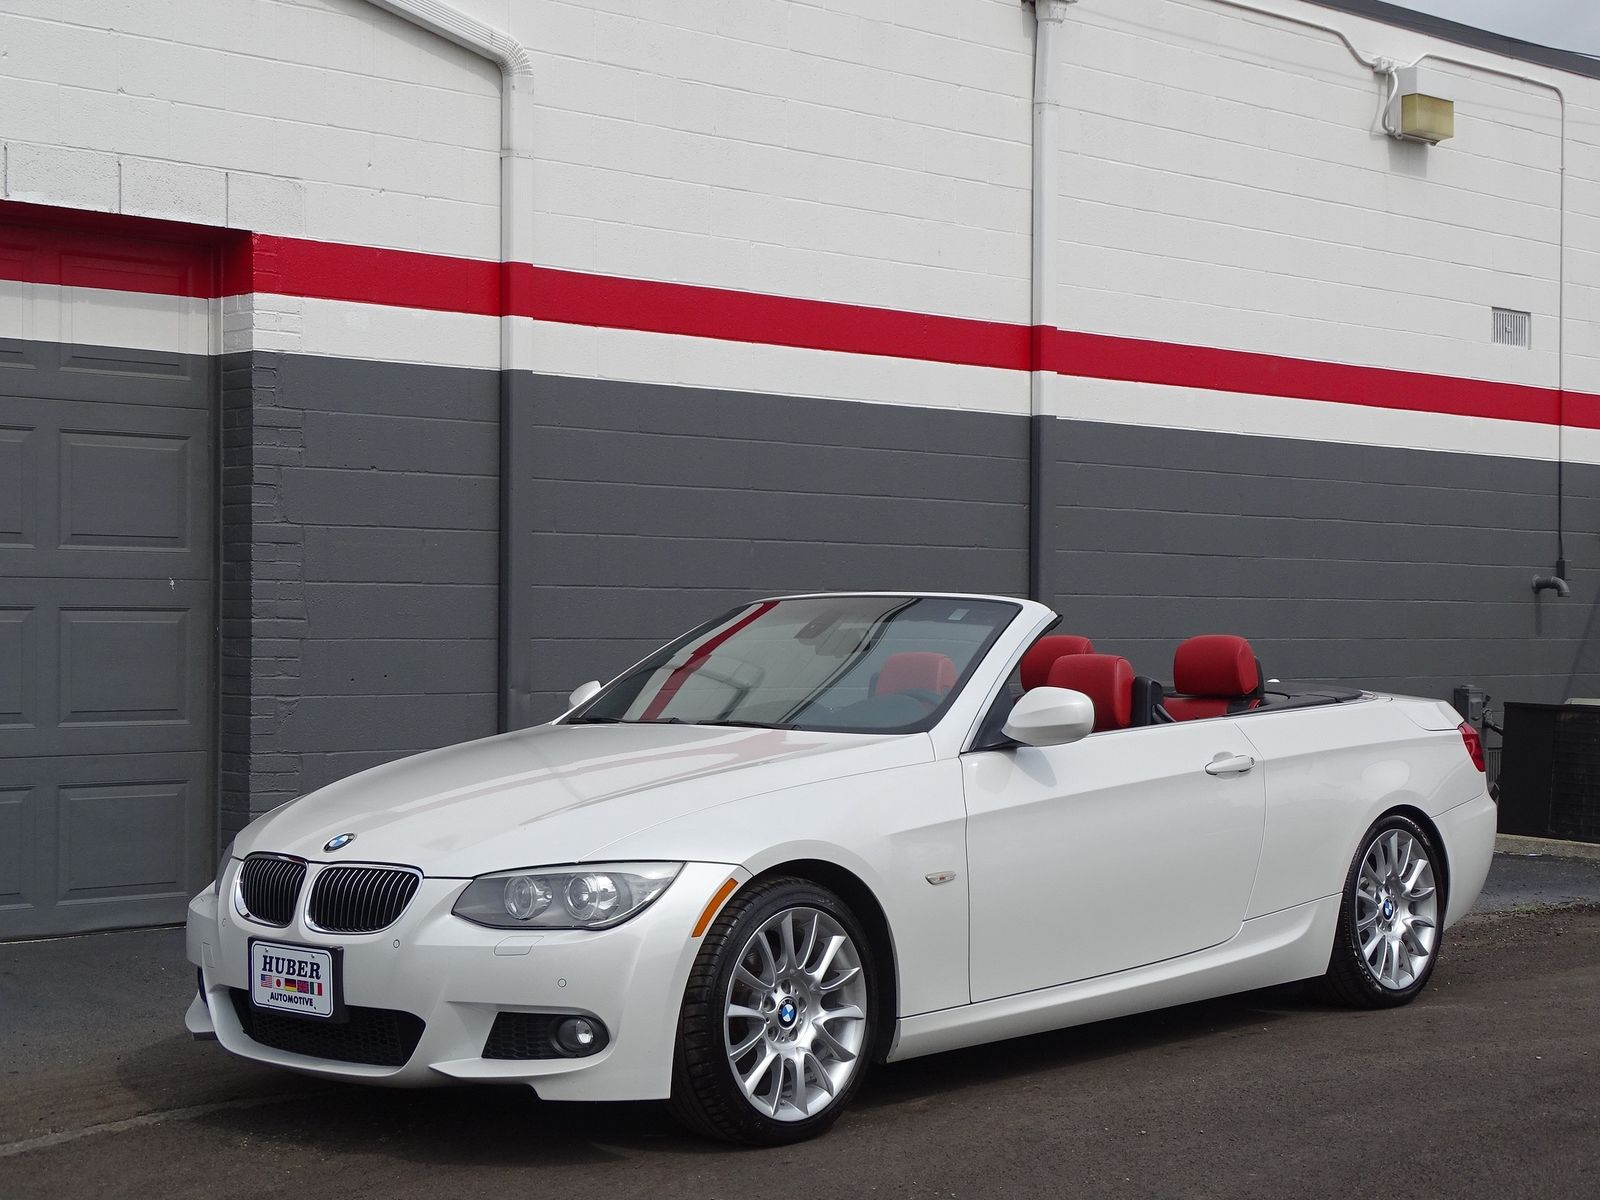 3 Series Bmw 328i 97k Mil Convertible I 6 Cyl Automatic Mineral White Coral Red Interior 2018 2019 Is In Stock And For Sale Mycarboard Com